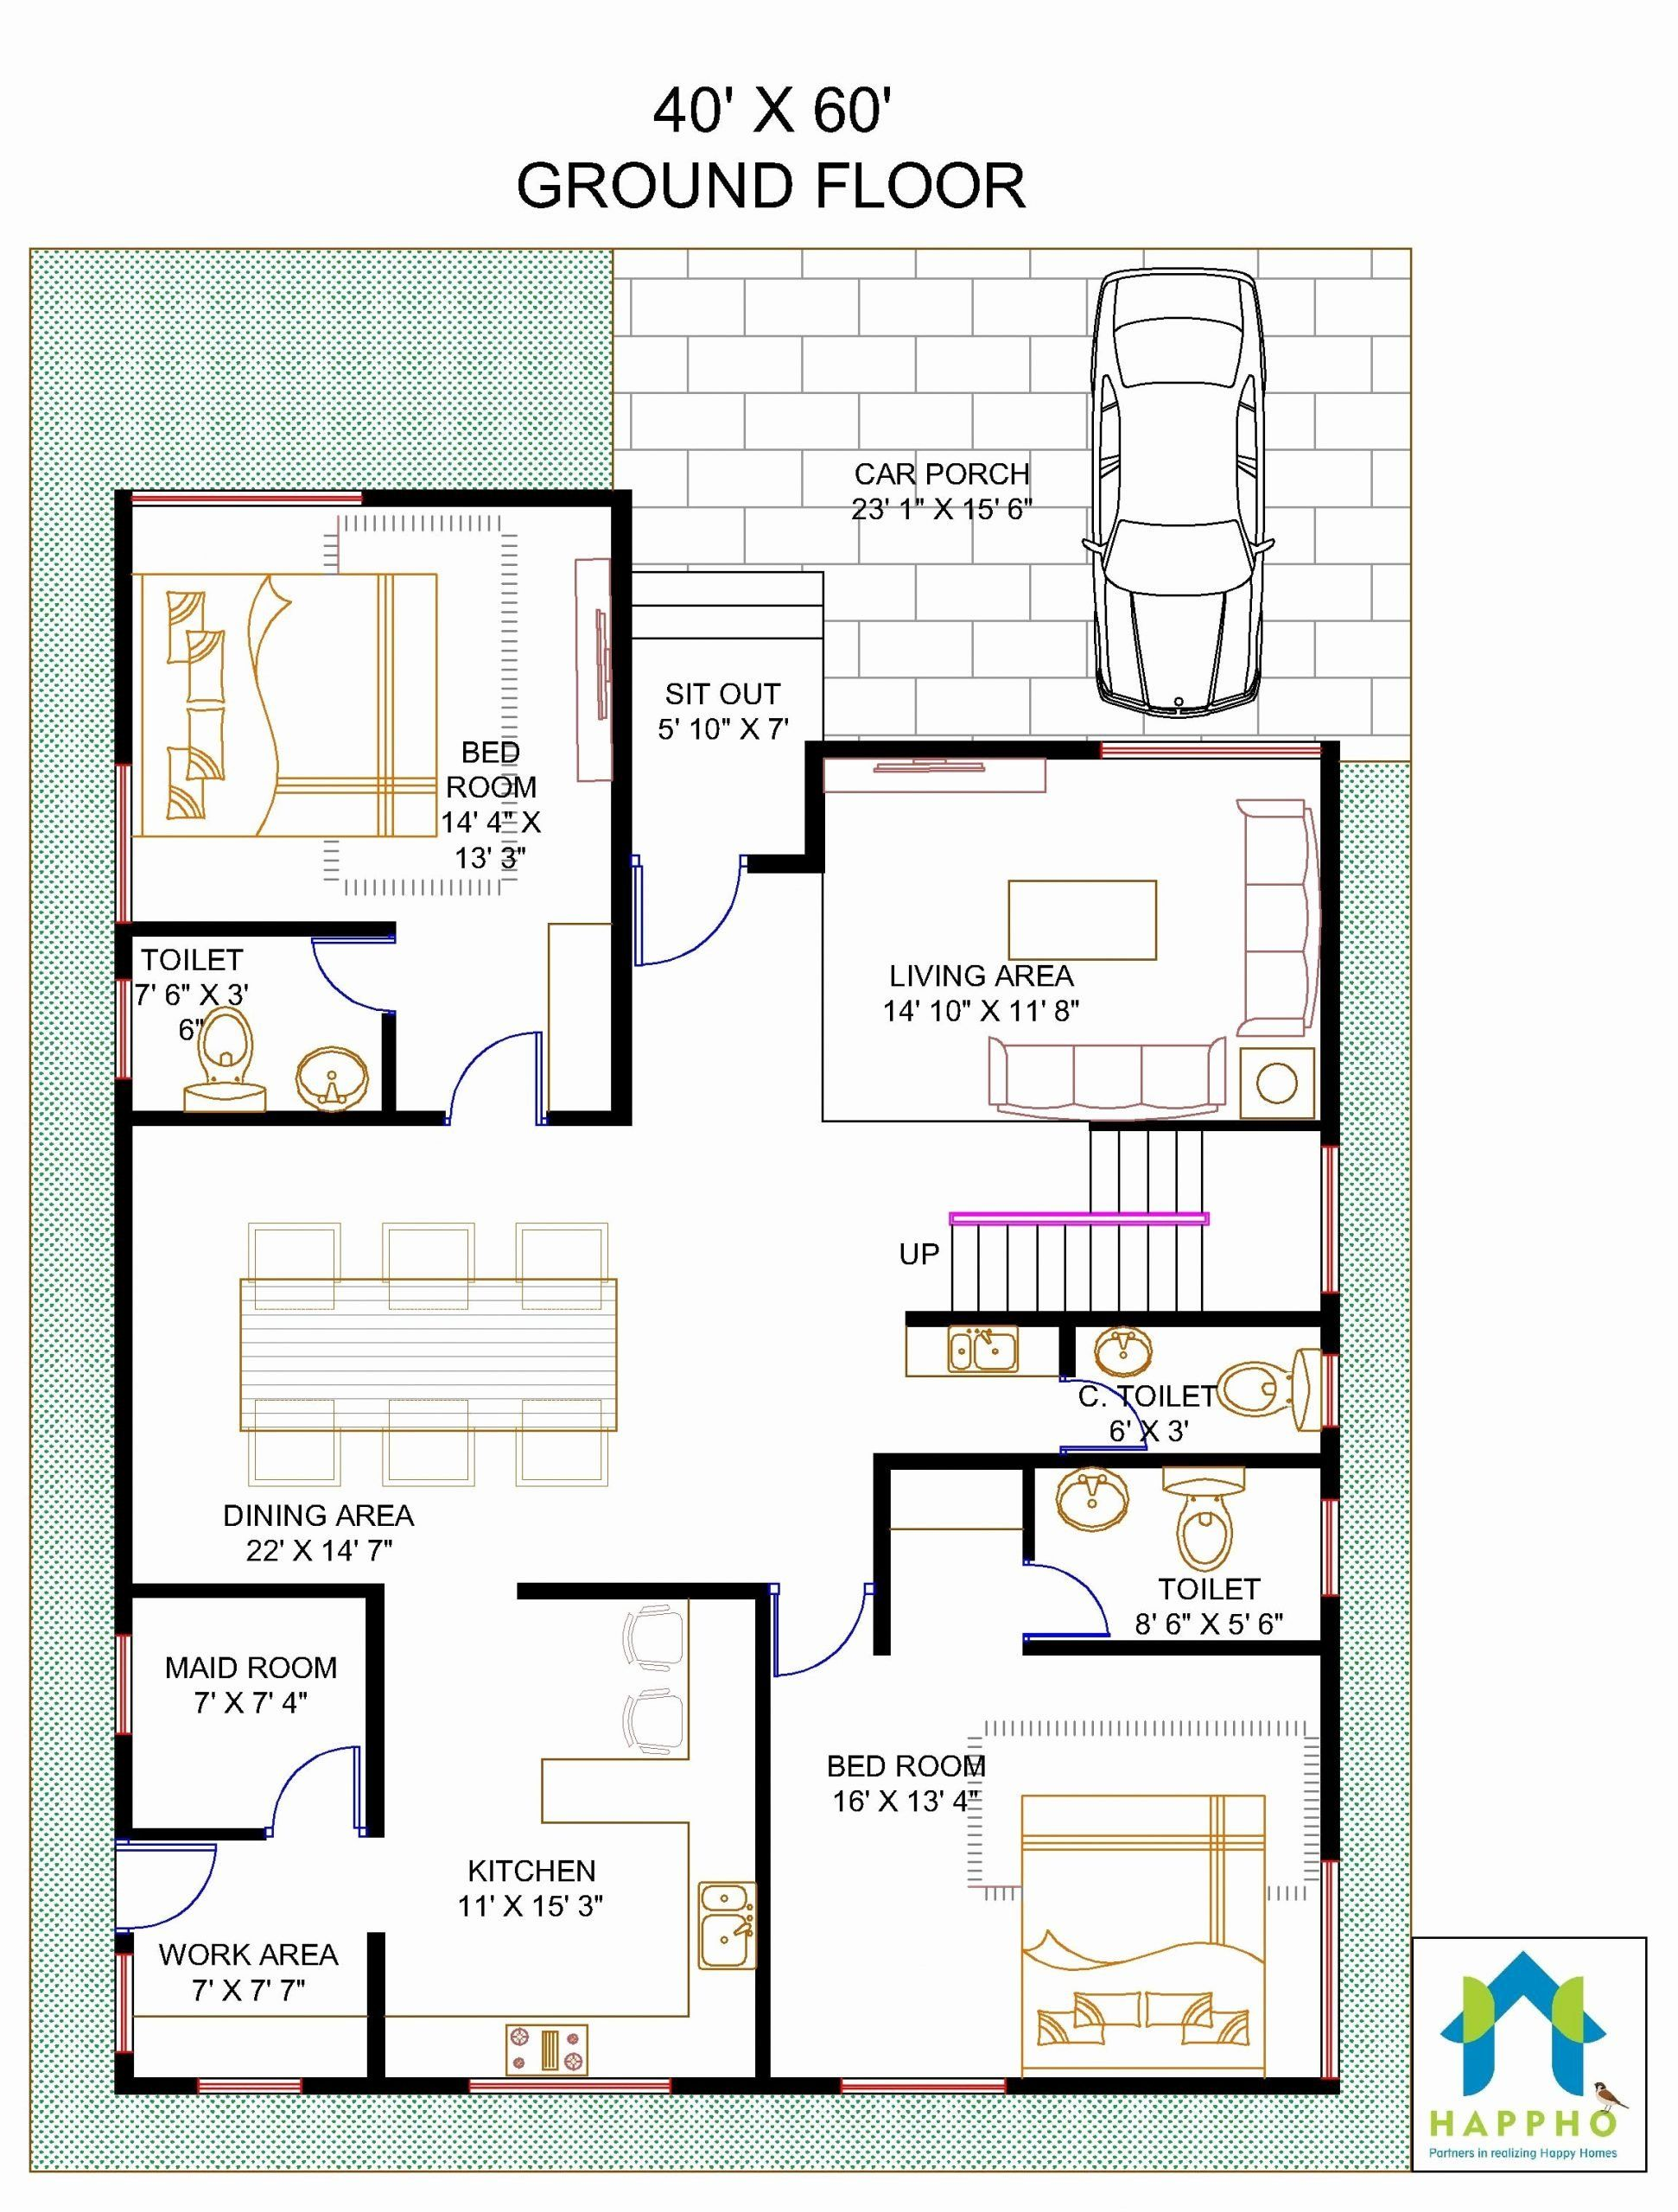 60 X 30 House Plans Elegant Floor Plan For 40 X 60 Feet Plot Square House Plans Unique Floor Plans Beautiful House Plans